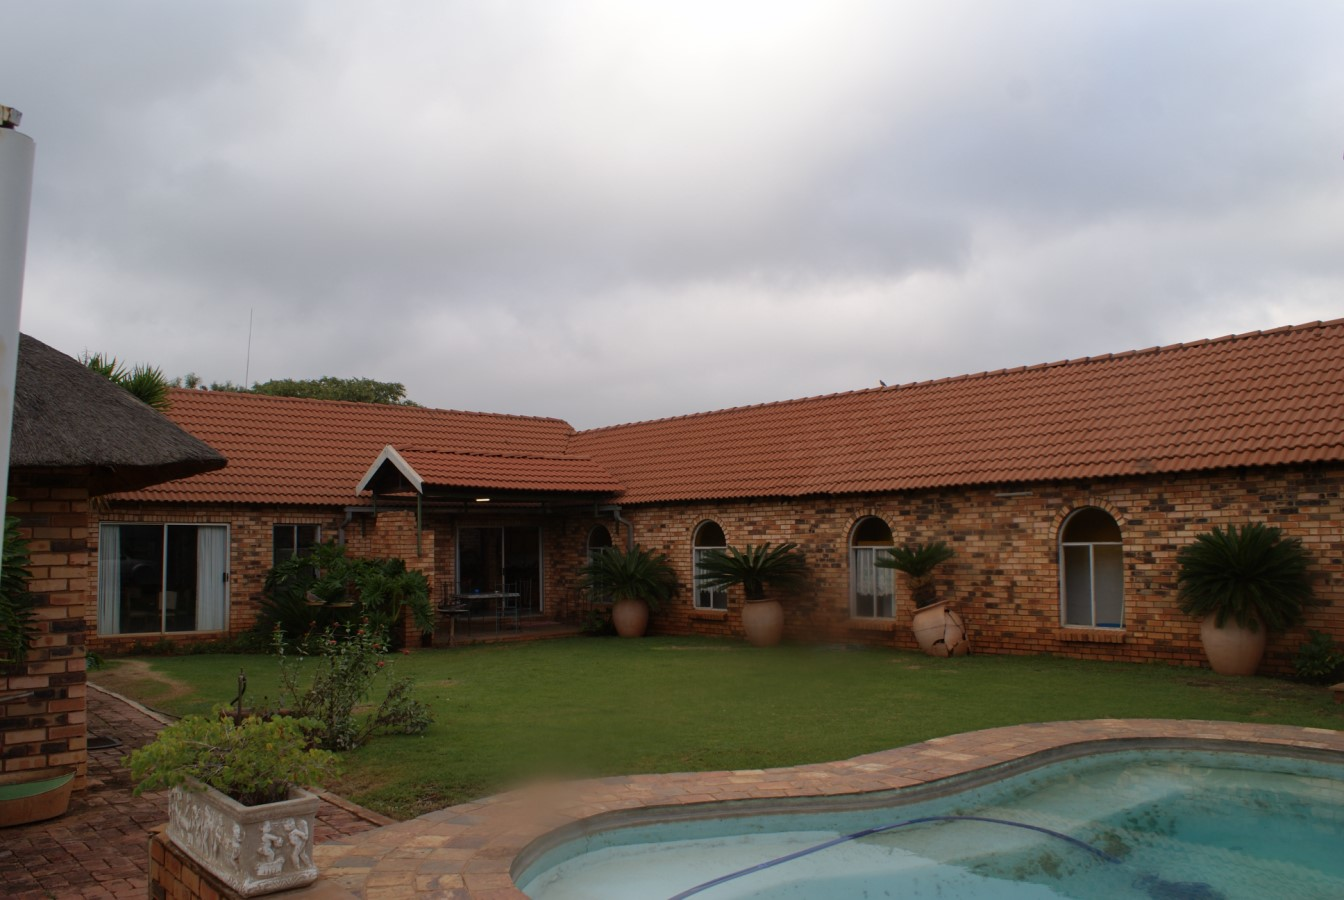 Rent to own. 2,9 ha plot, 4 bedroom house with 275 pomegranate trees